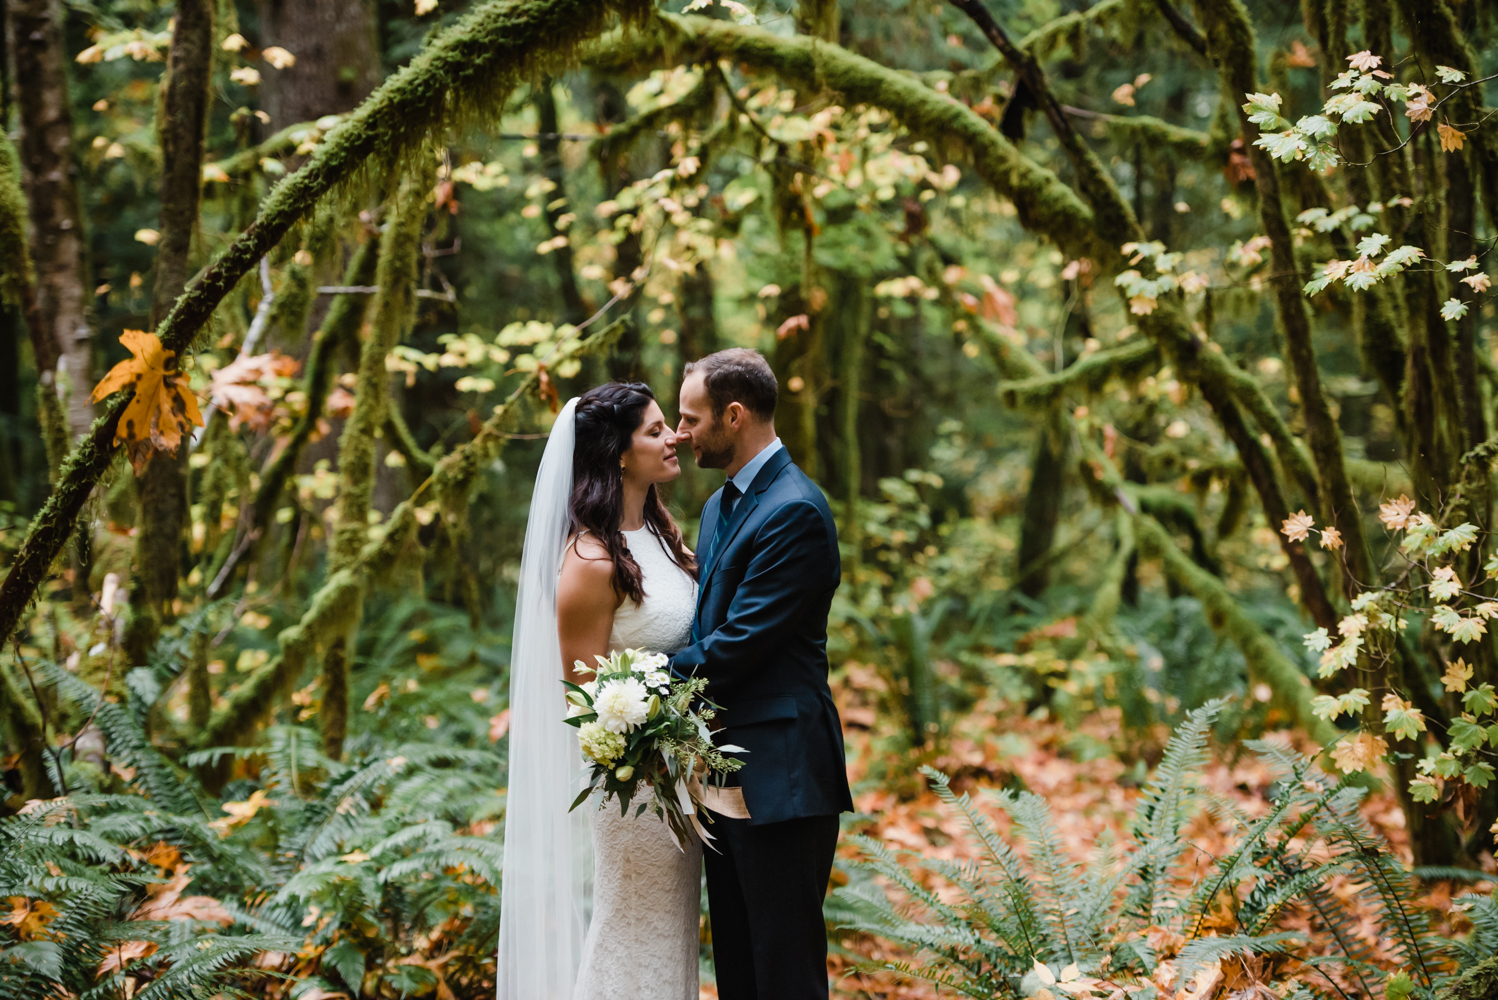 Squamish Wedding Photographer88.jpg